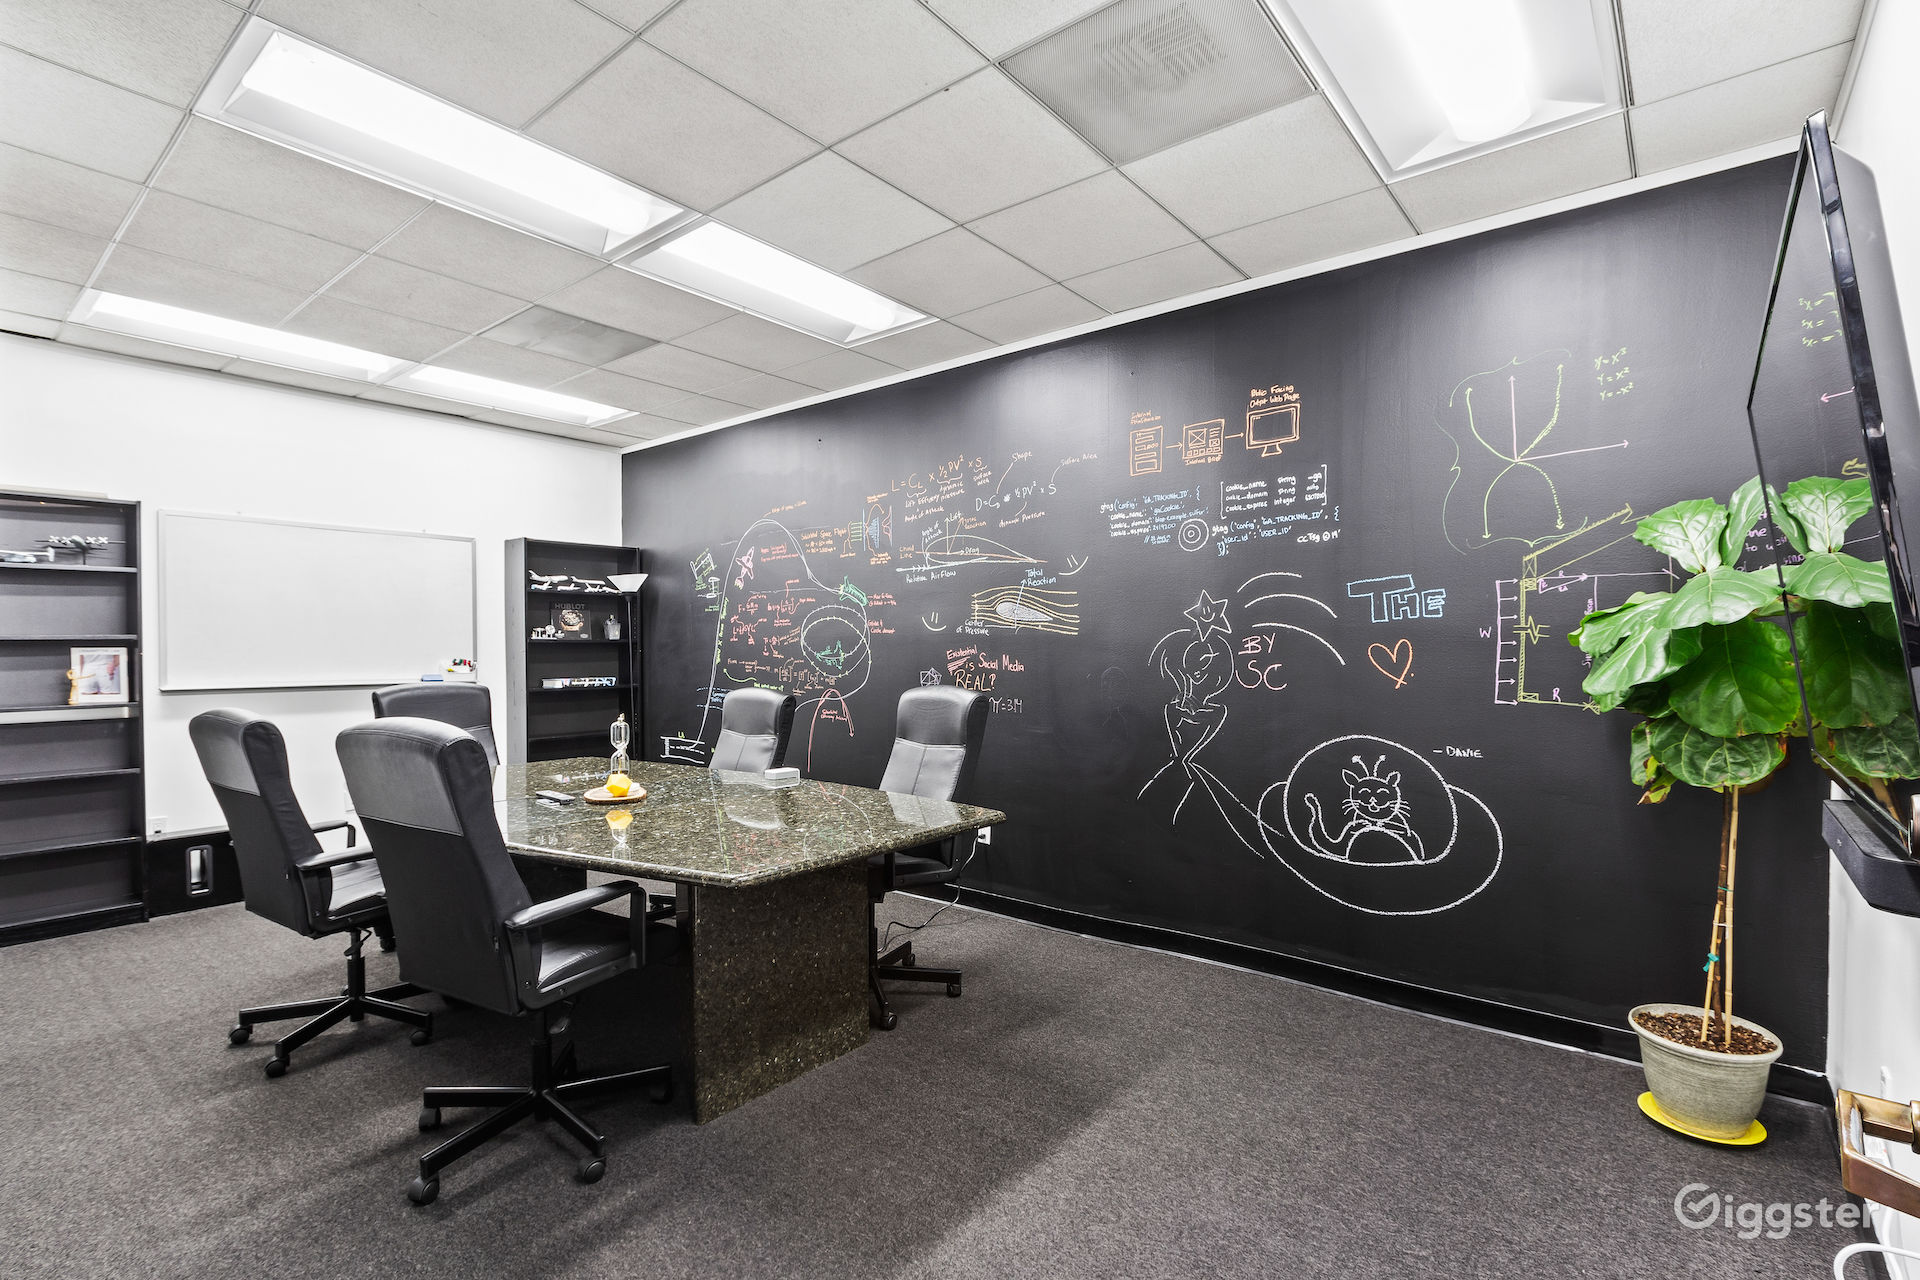 Hip & Creative Conference room in DTLA with White Board and Large Black Chalkboard Wall